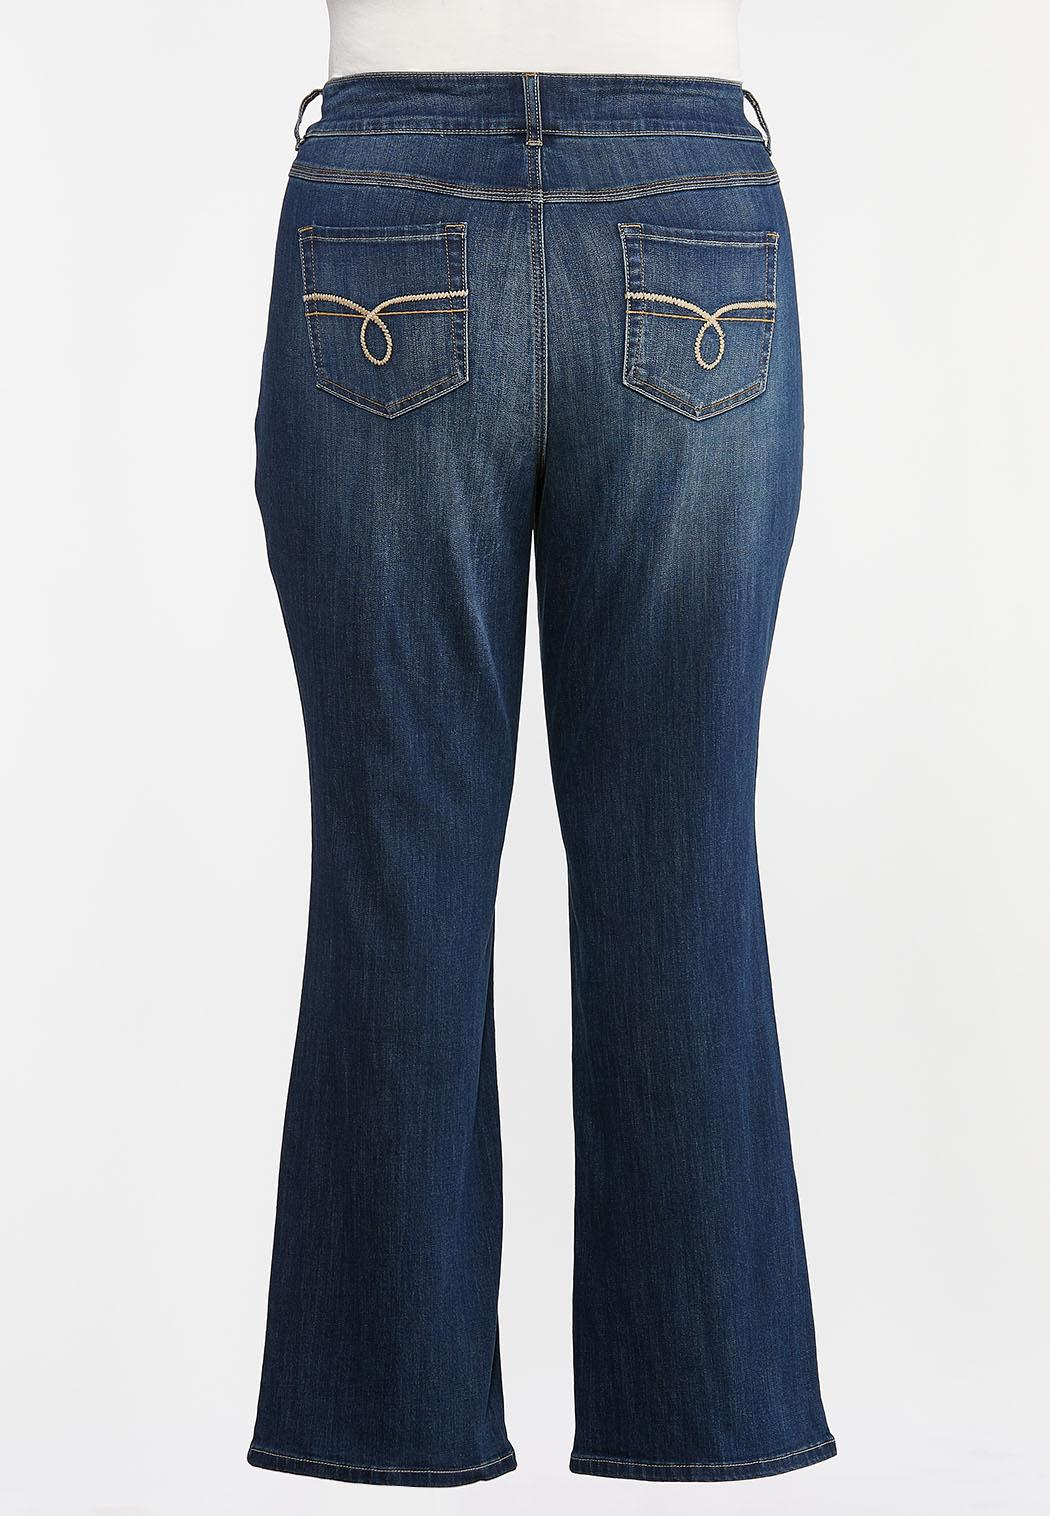 Plus Size High-Rise Bootcut Jeans (Item #44378421)